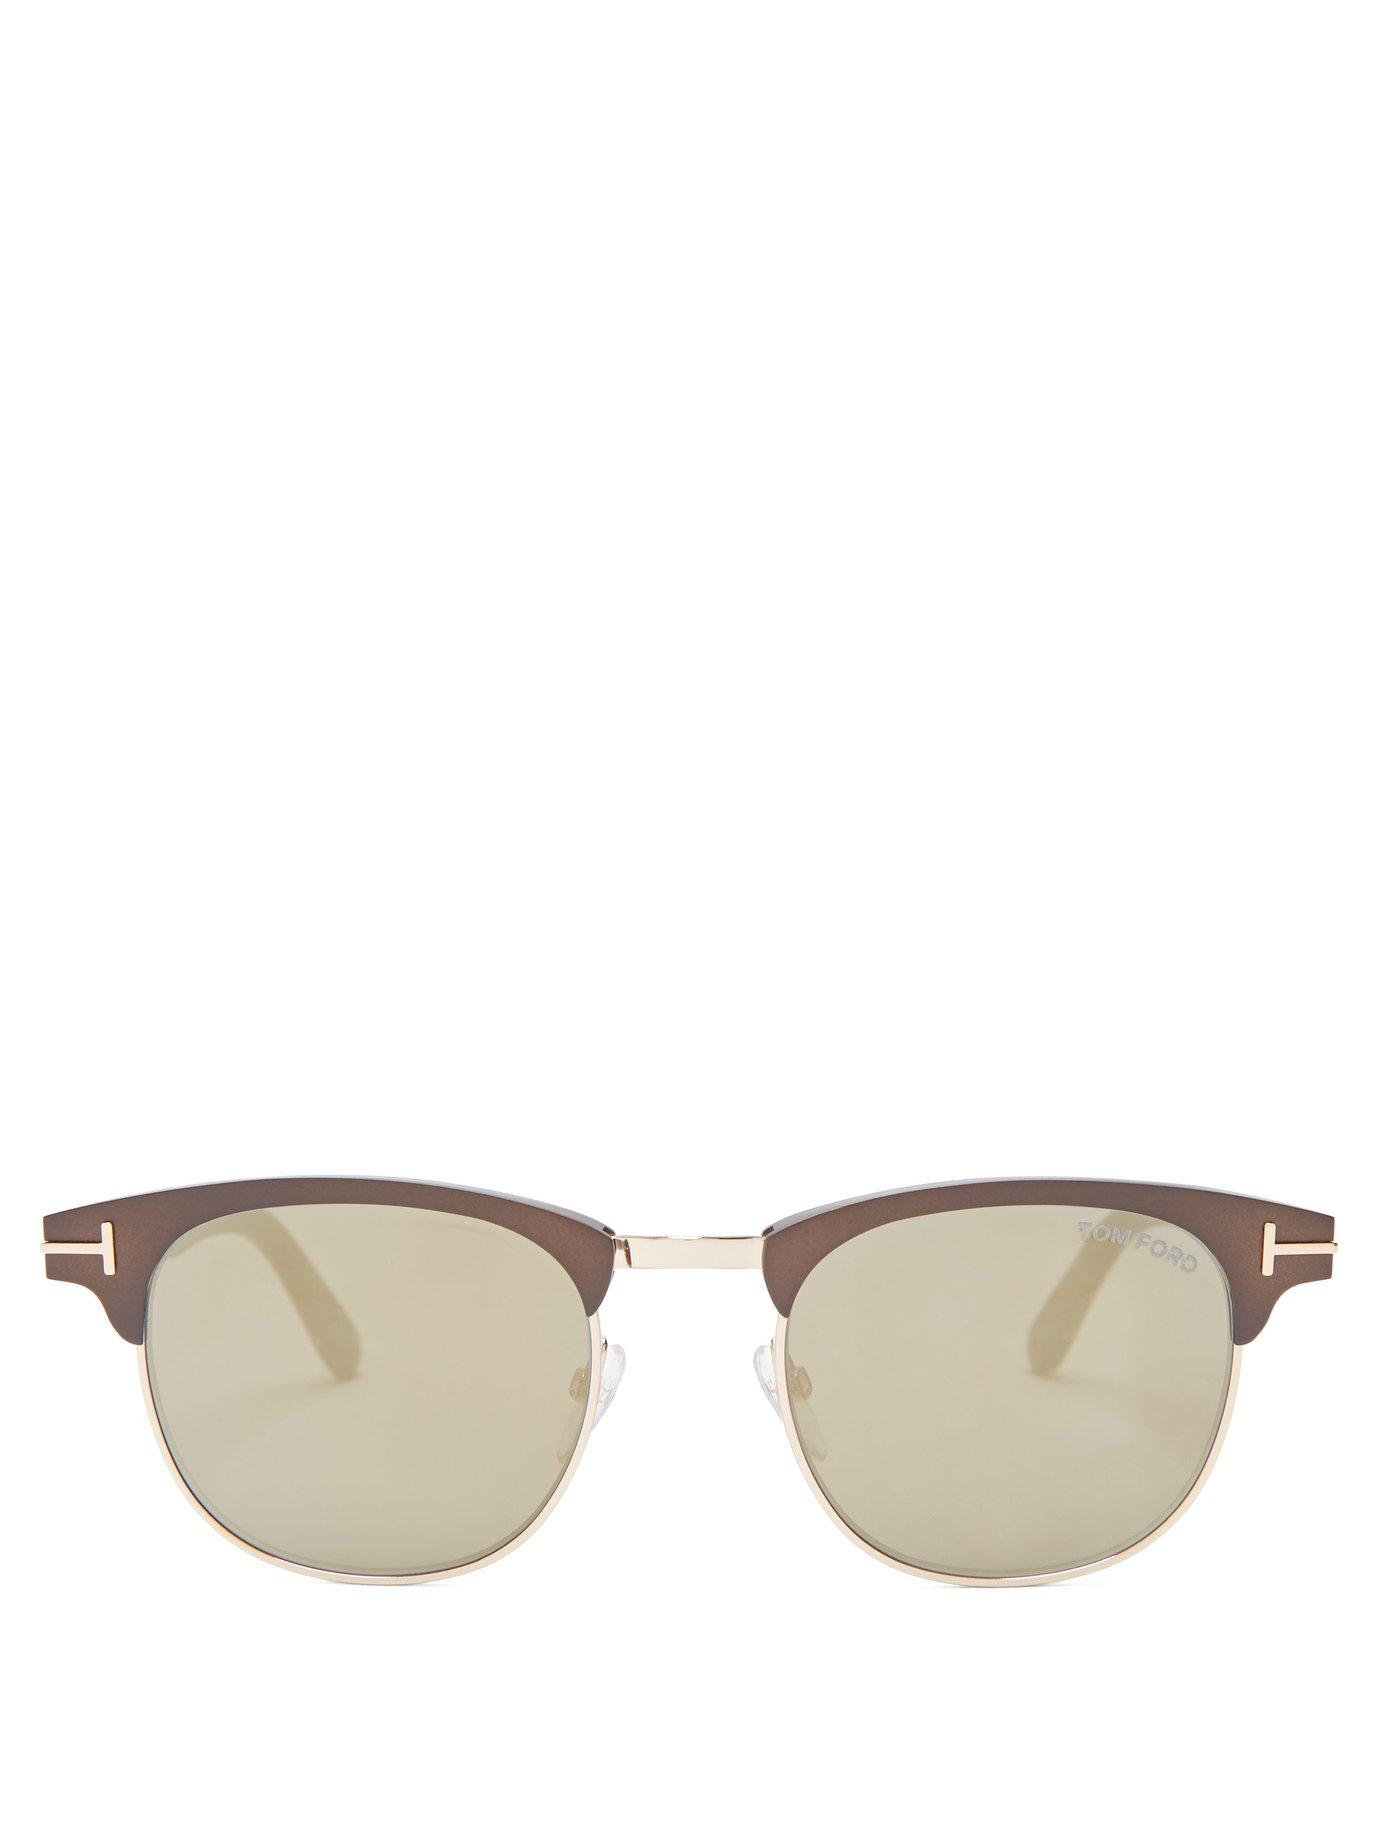 37d0aec0f3 Lyst - Tom Ford Laurent Sunglasses in Brown for Men